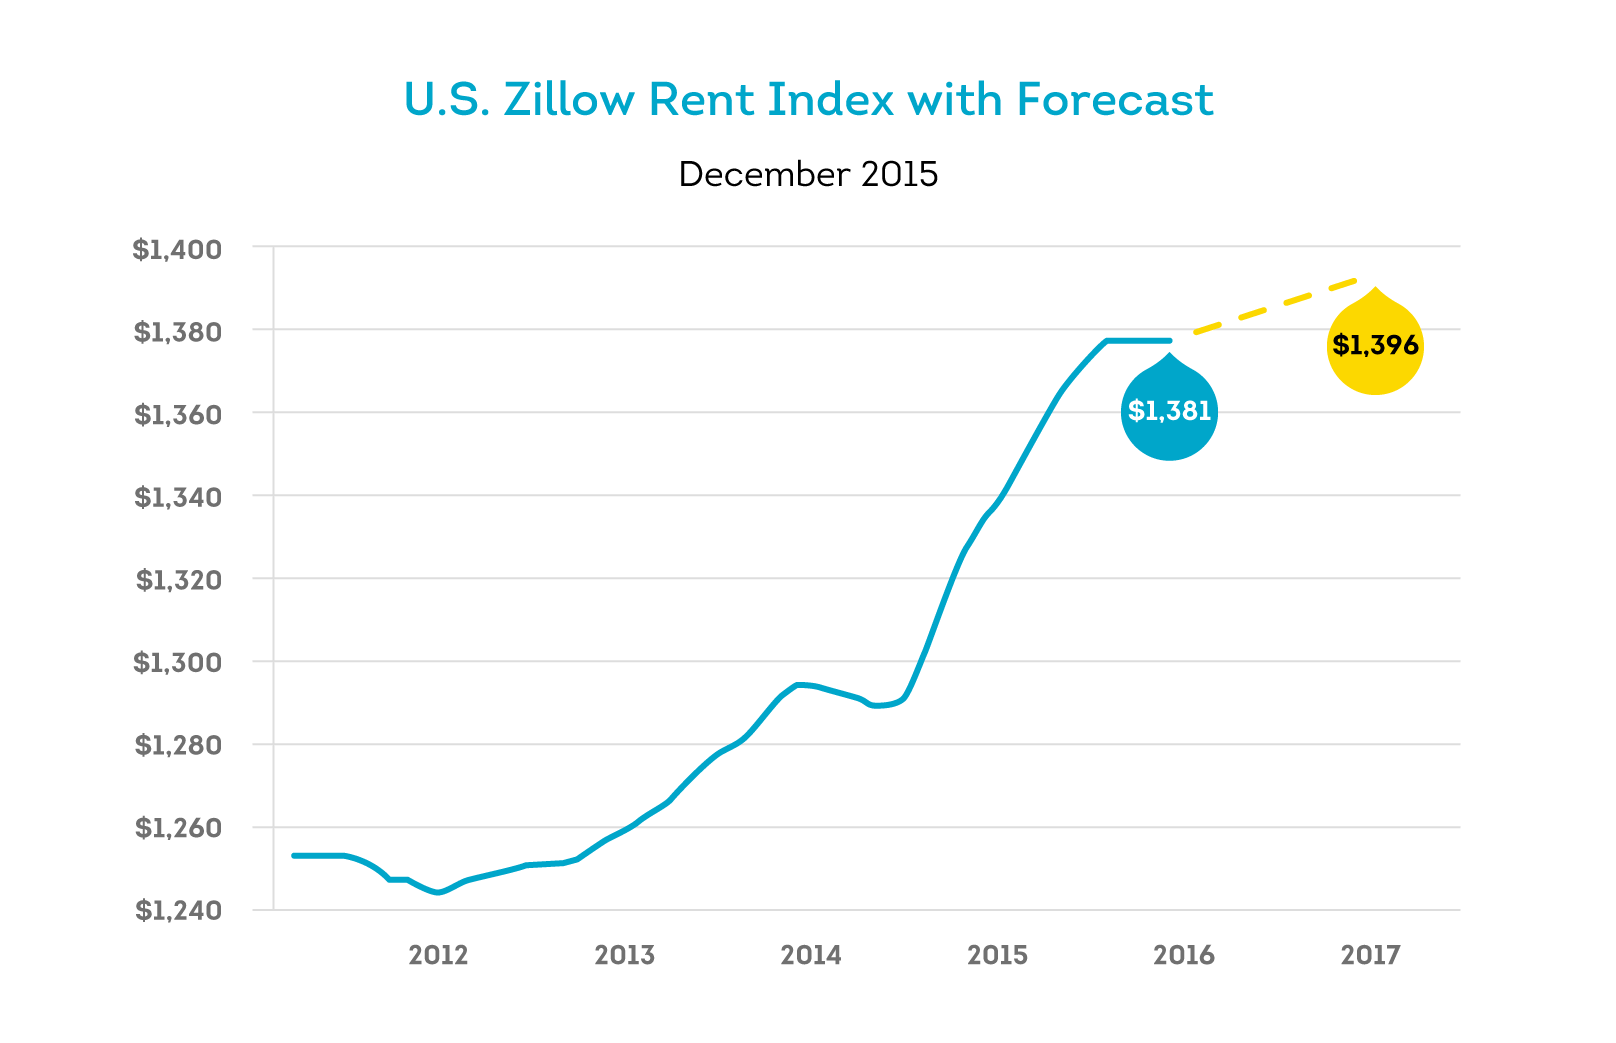 A strong trend to raise rent prices